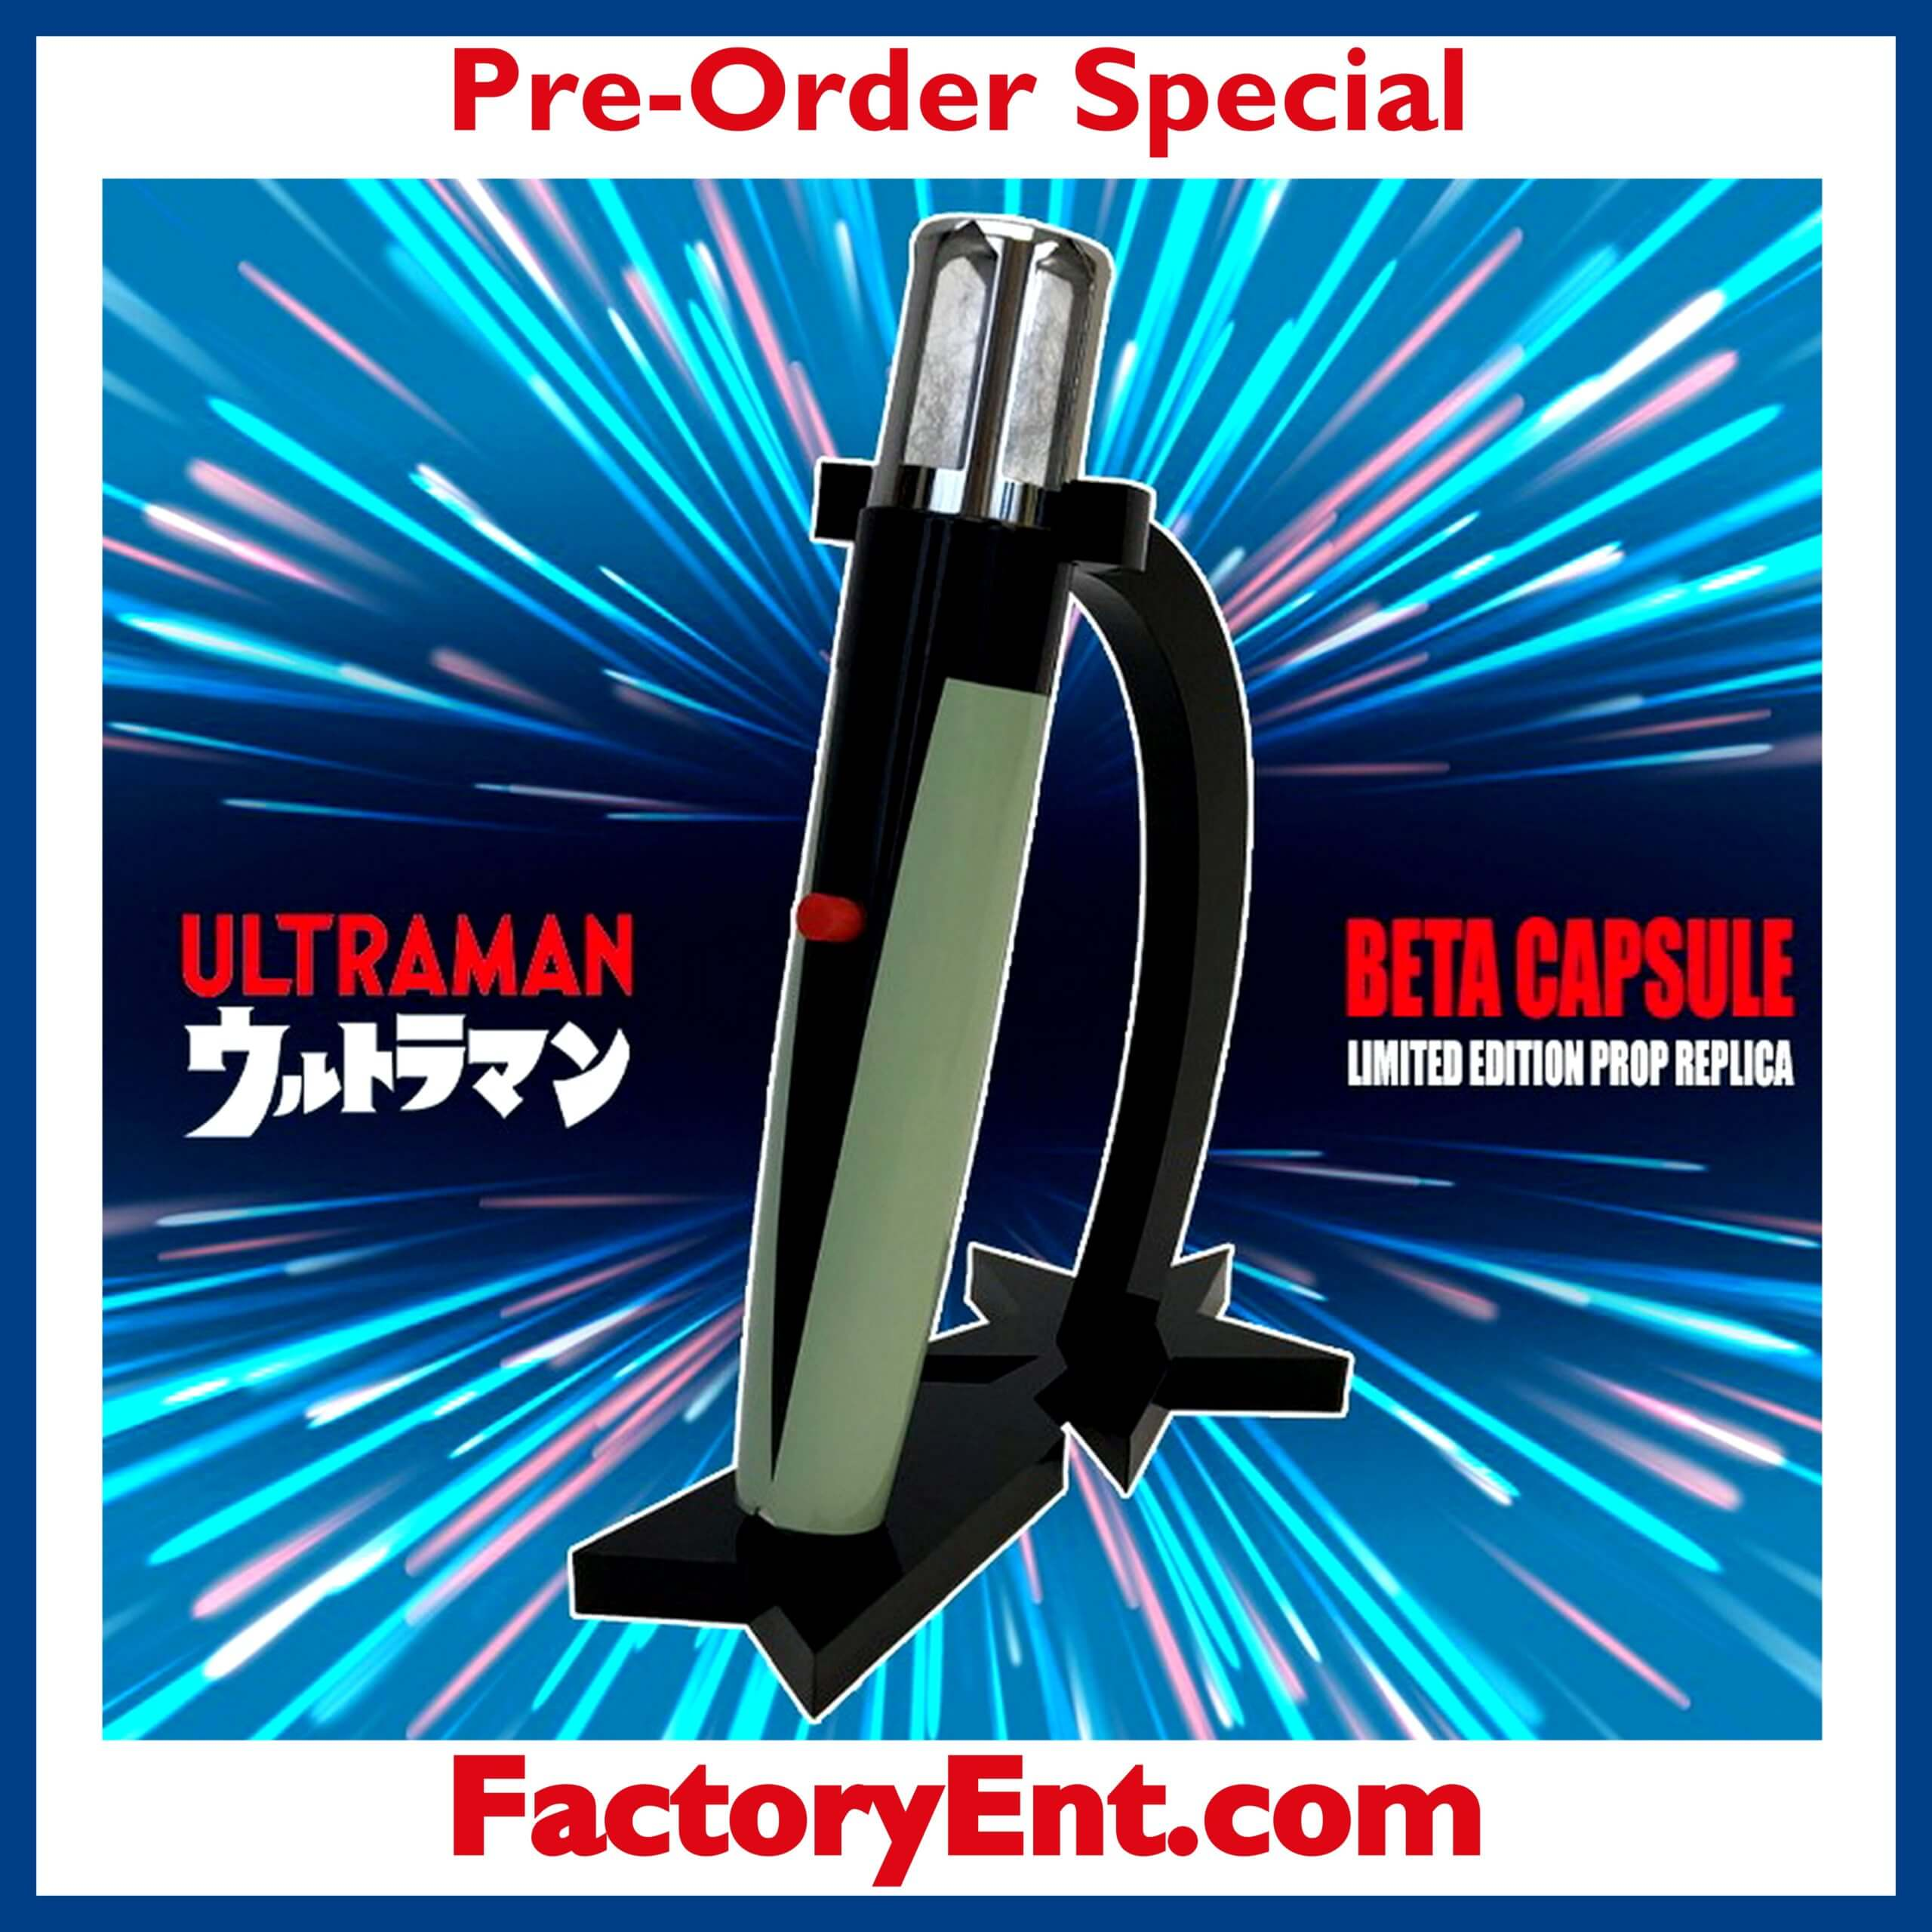 ULTRAMAN BETA CAPSULE ONLY FROM FACTORY ENTERTAINMENT